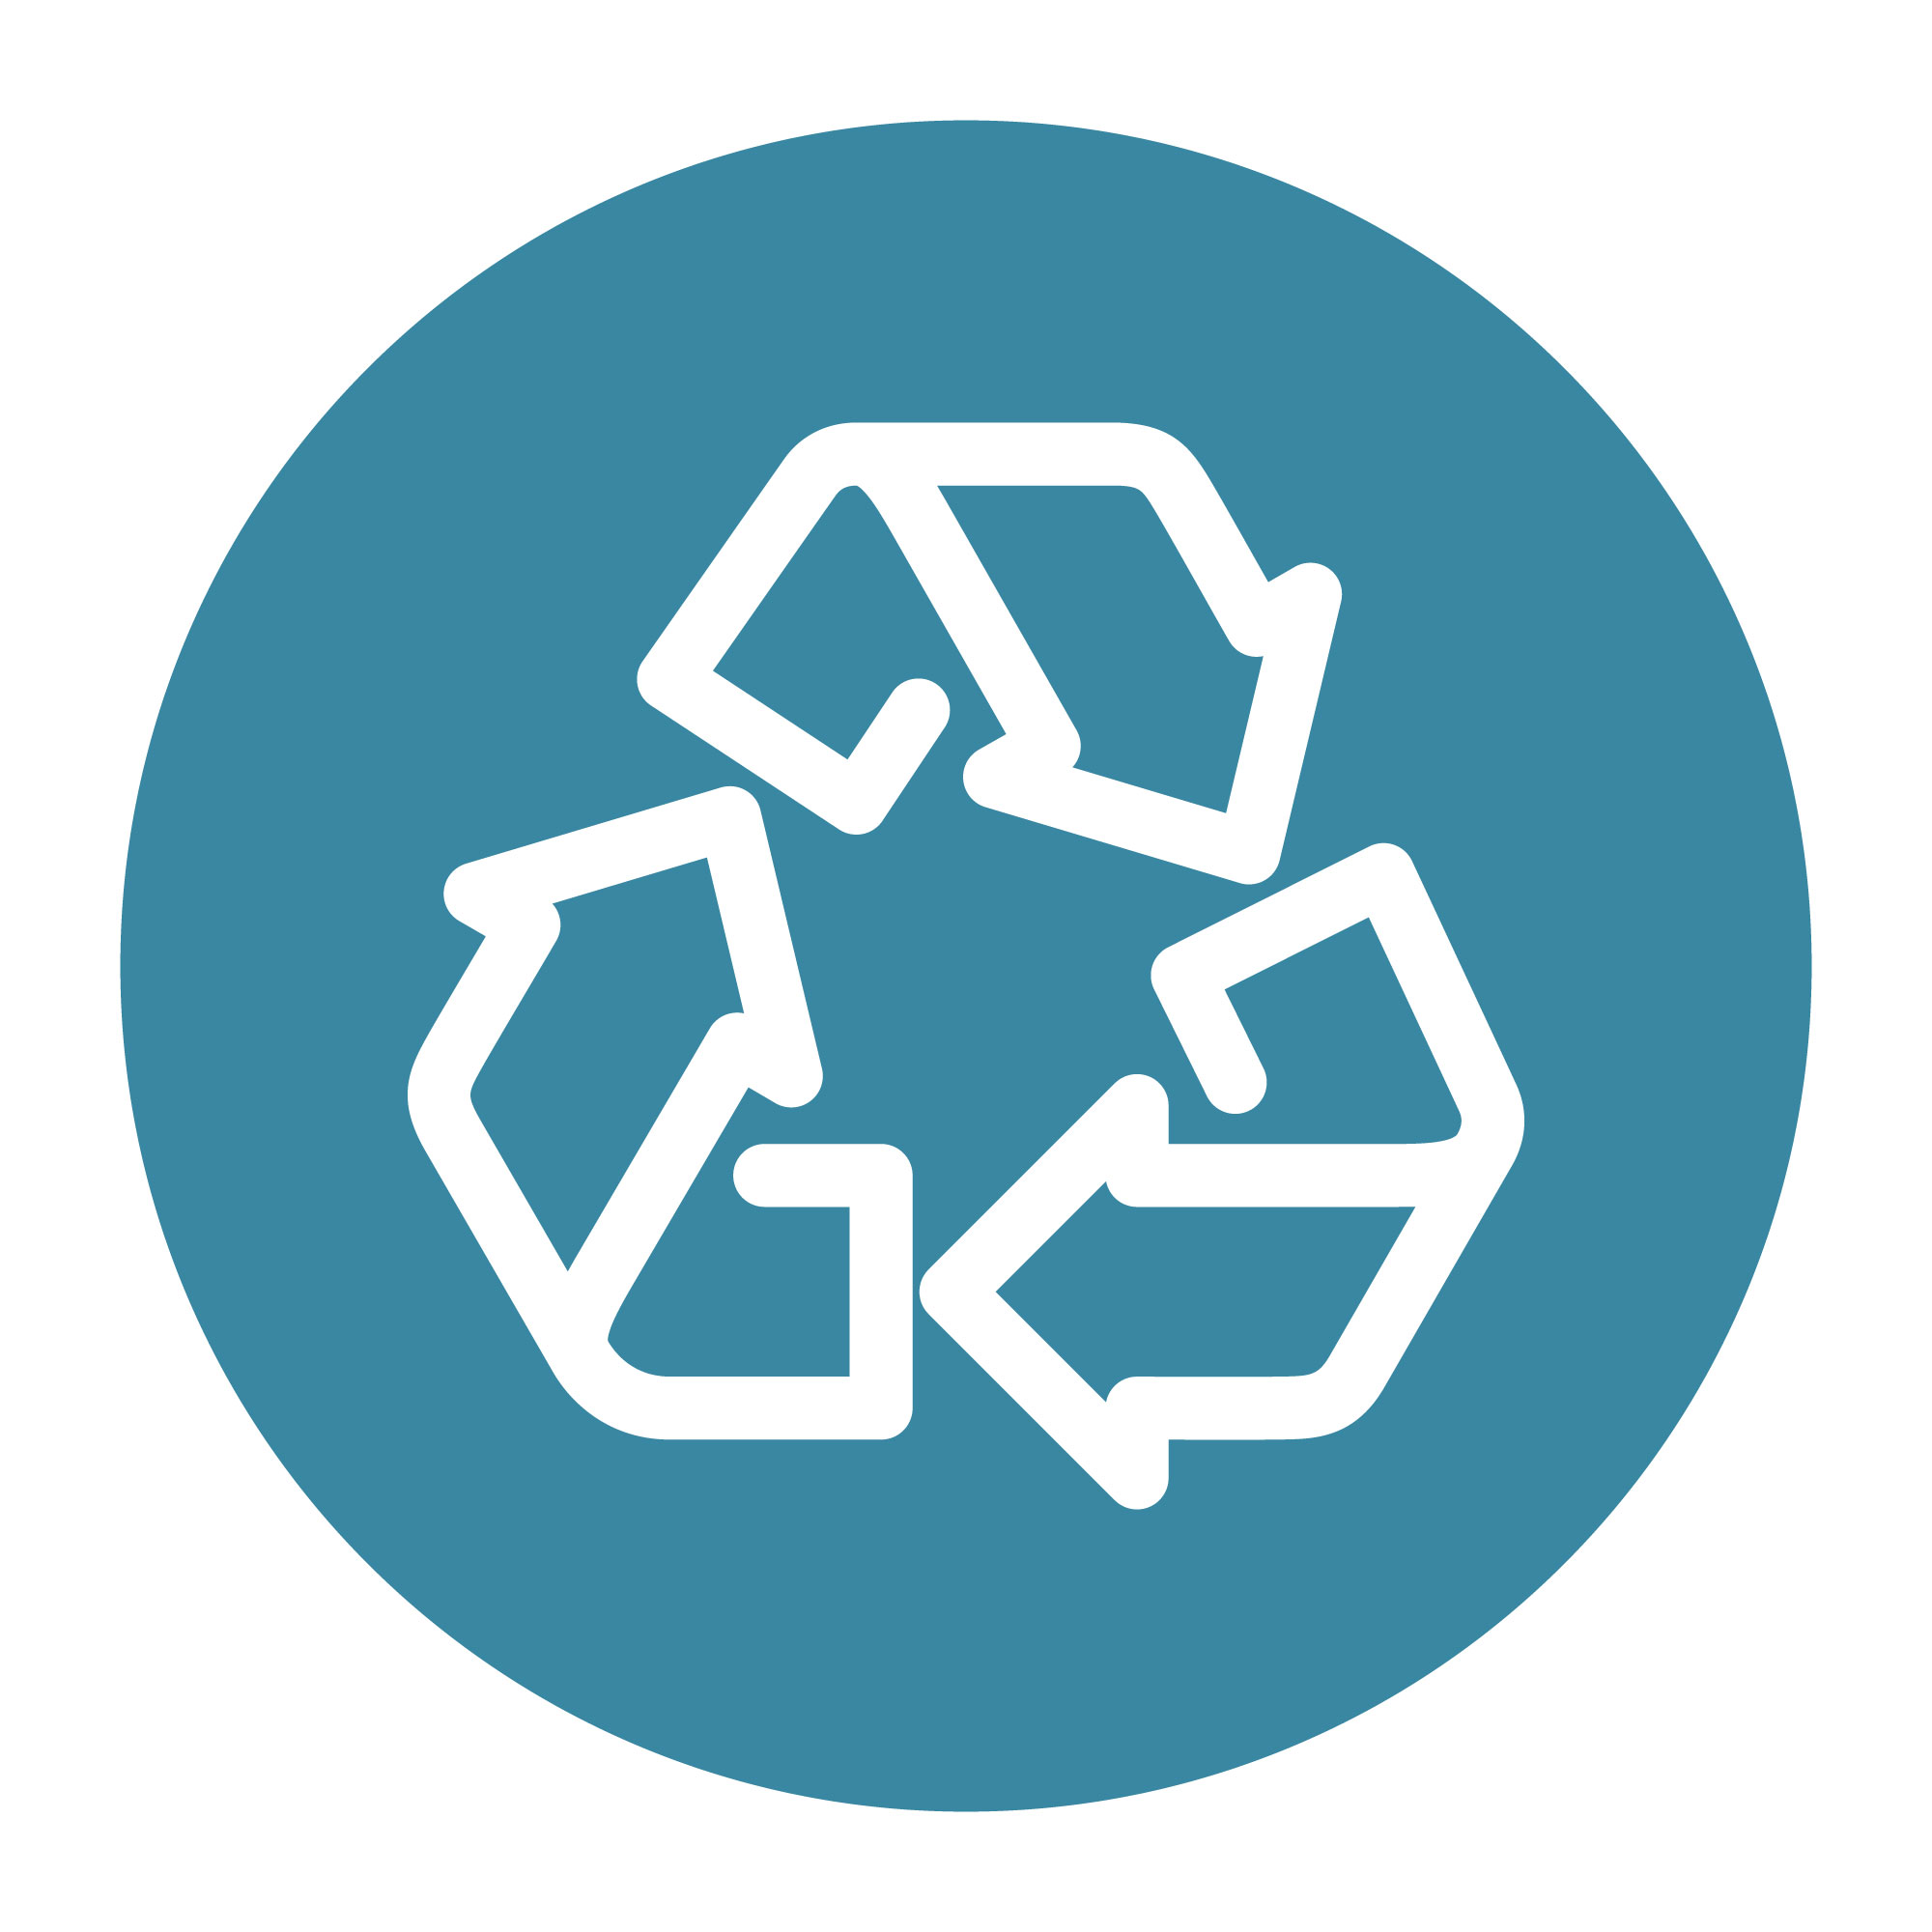 Industrial-Recycling-Icon.jpg